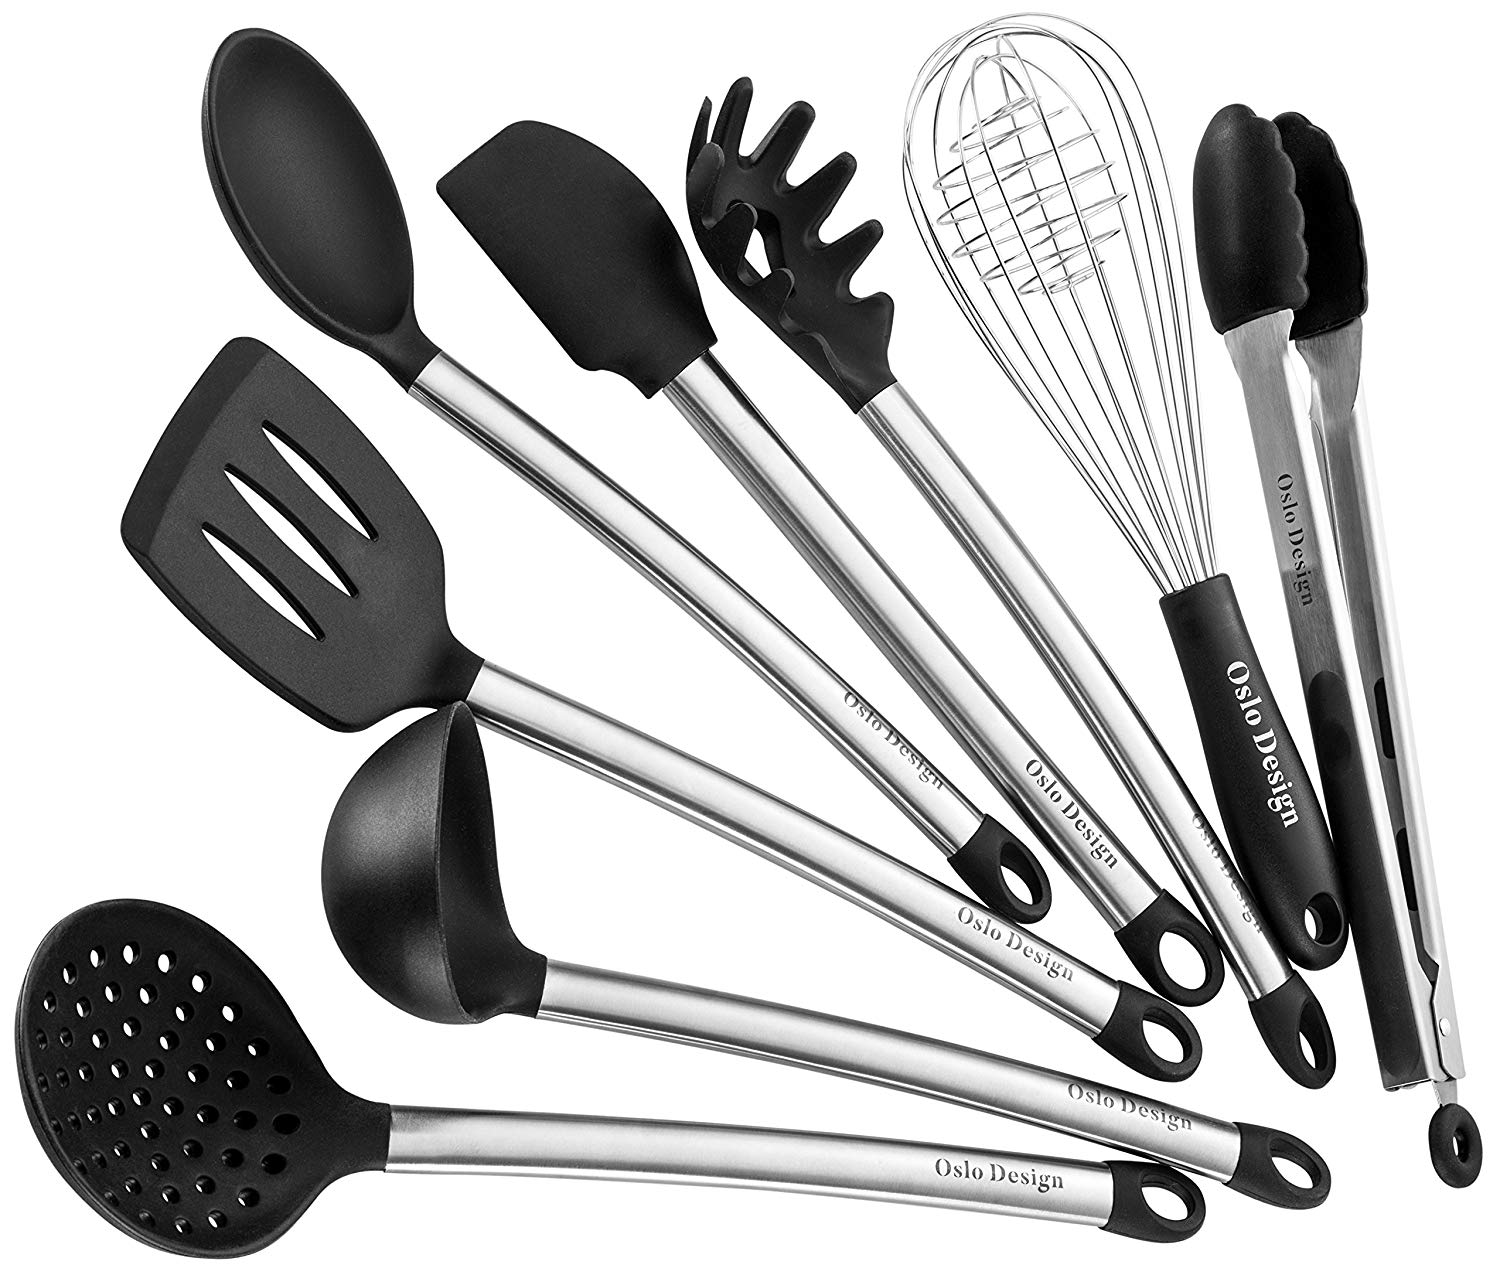 Top 10 Best Cooking Utensil Sets